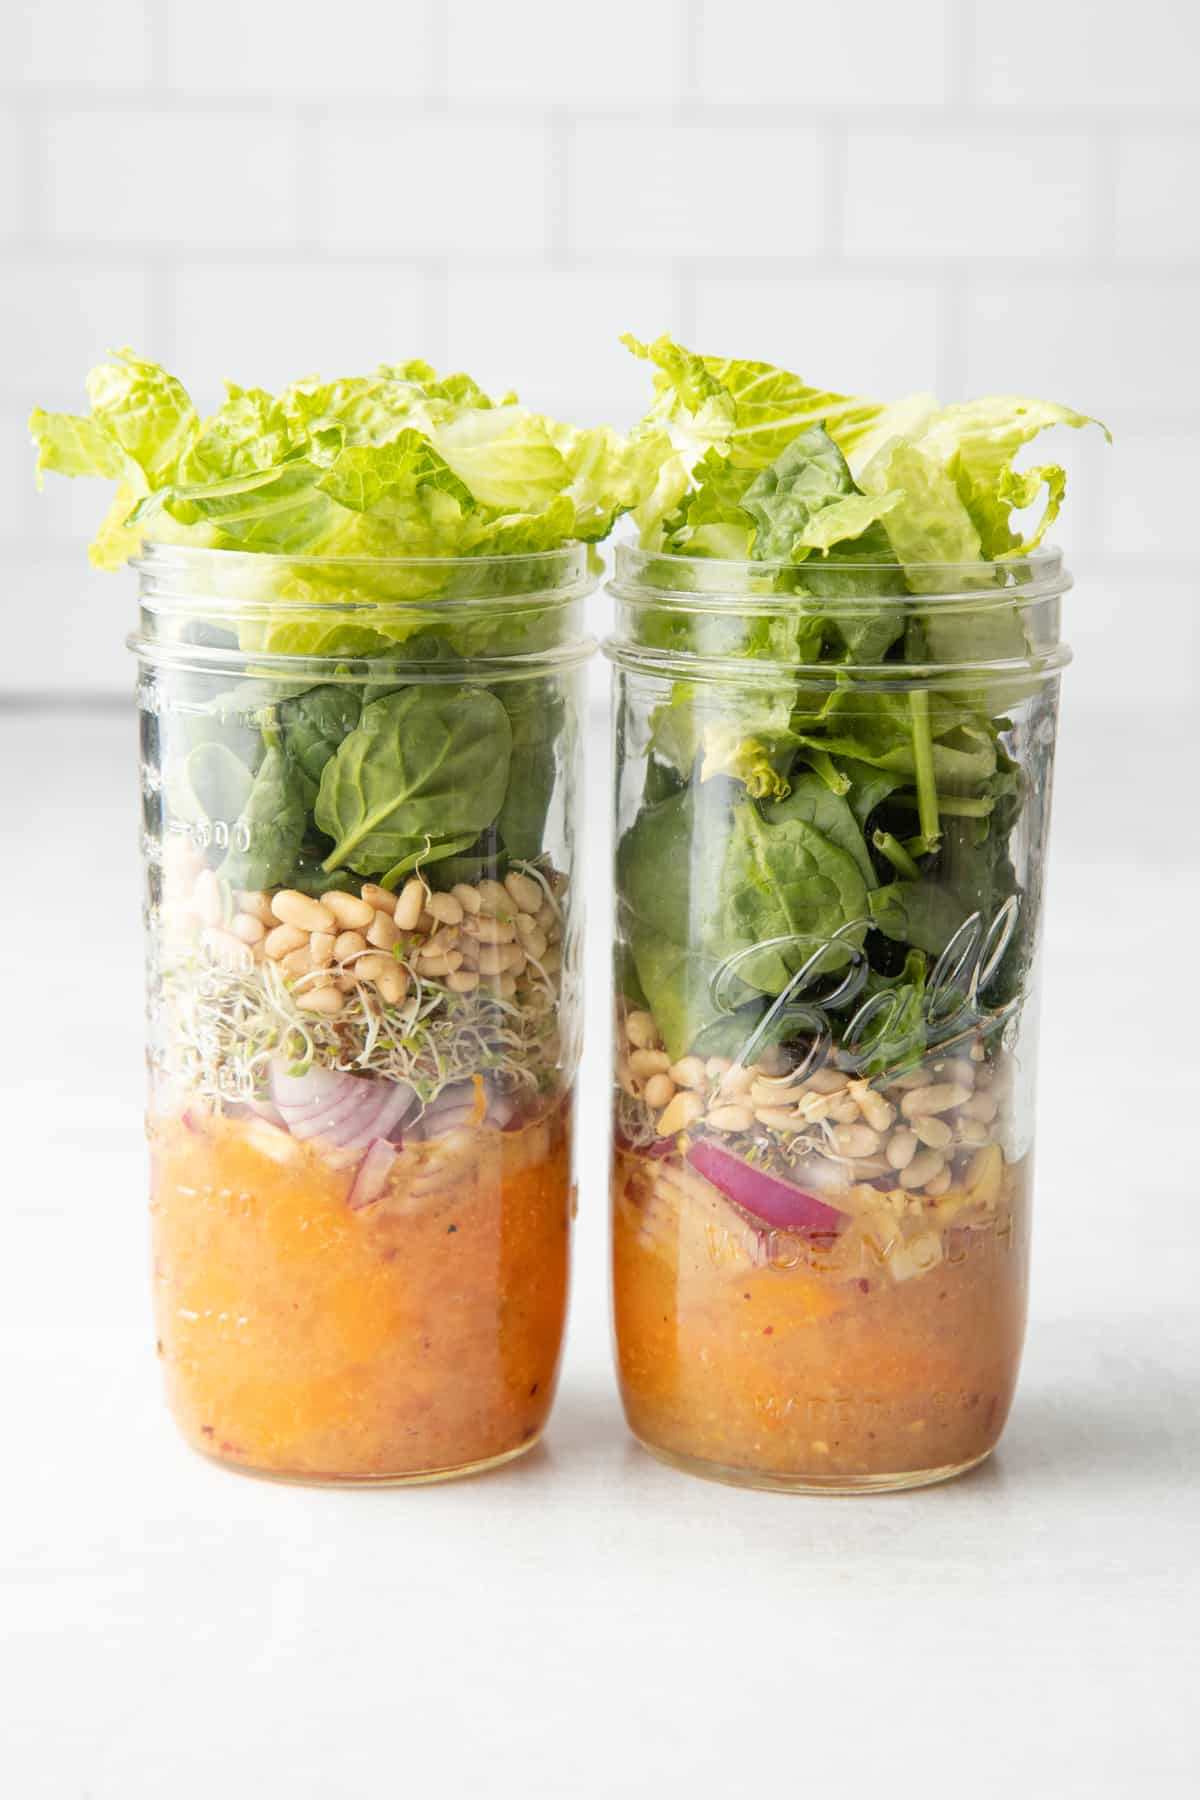 Two jars full of salad components for a citrus salad - dressing, mandarin slices, onions, sprouts, pine nuts, and greens.